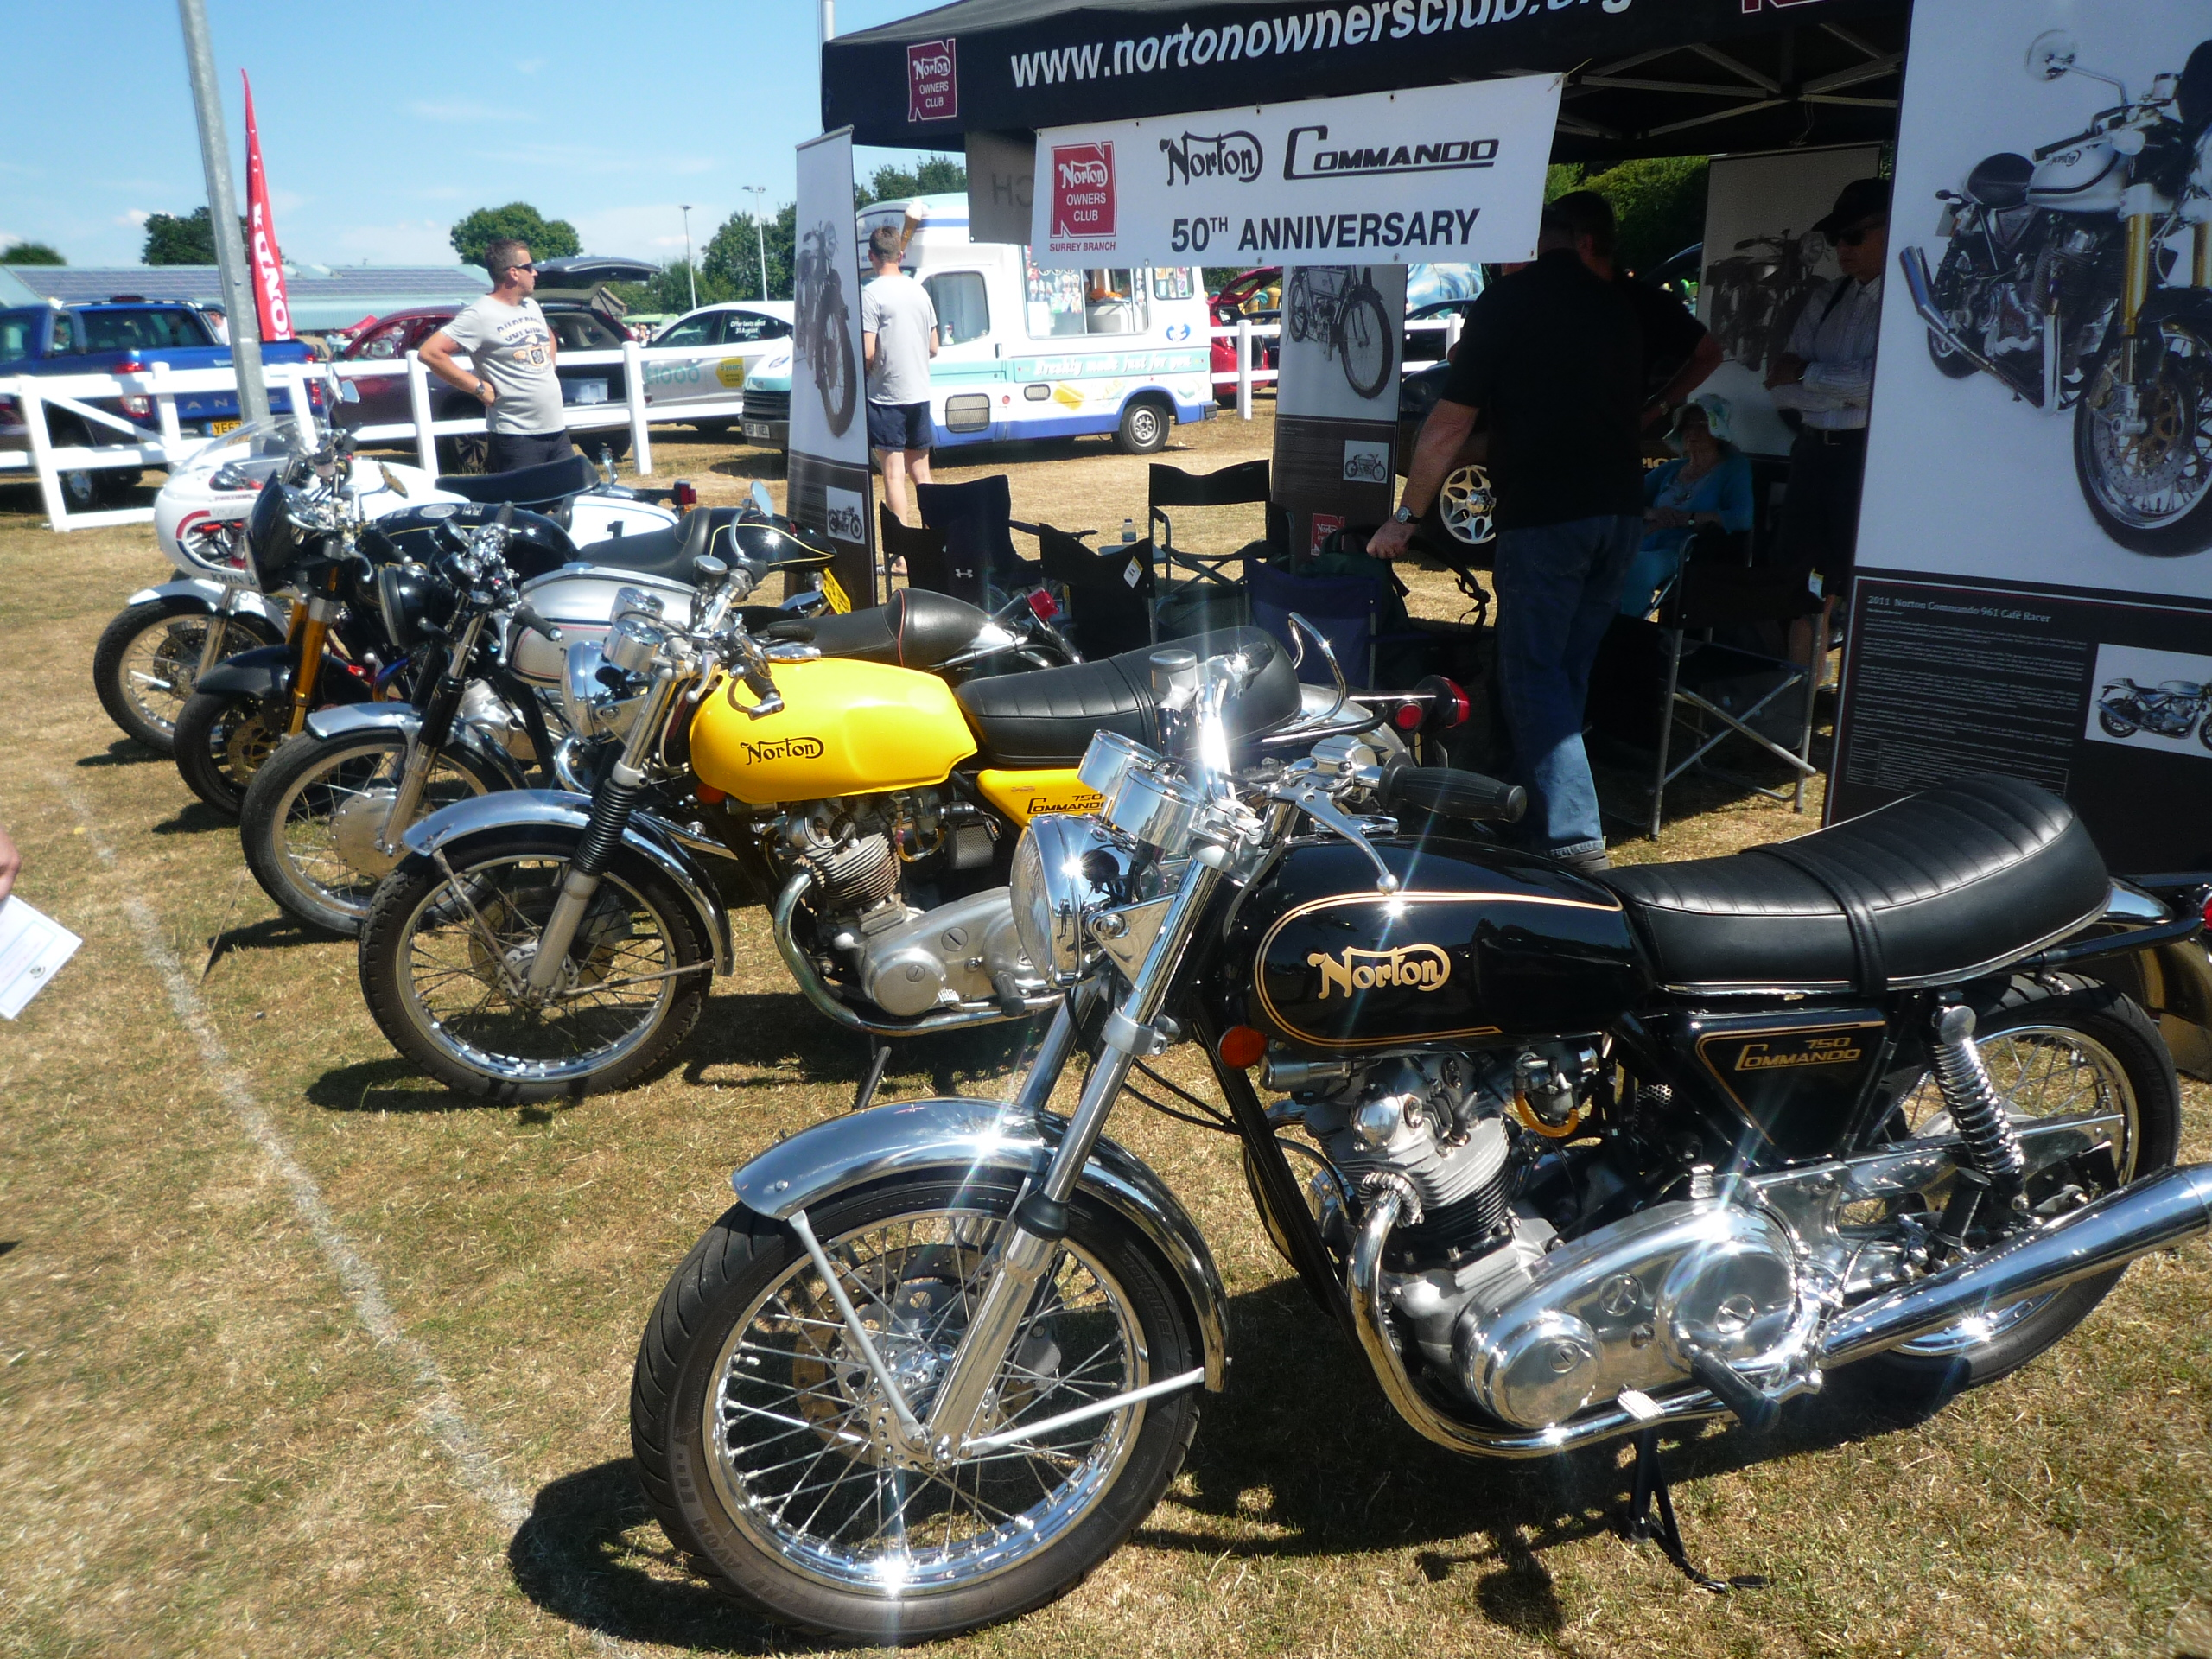 wrc classic car and bike show surrey branch